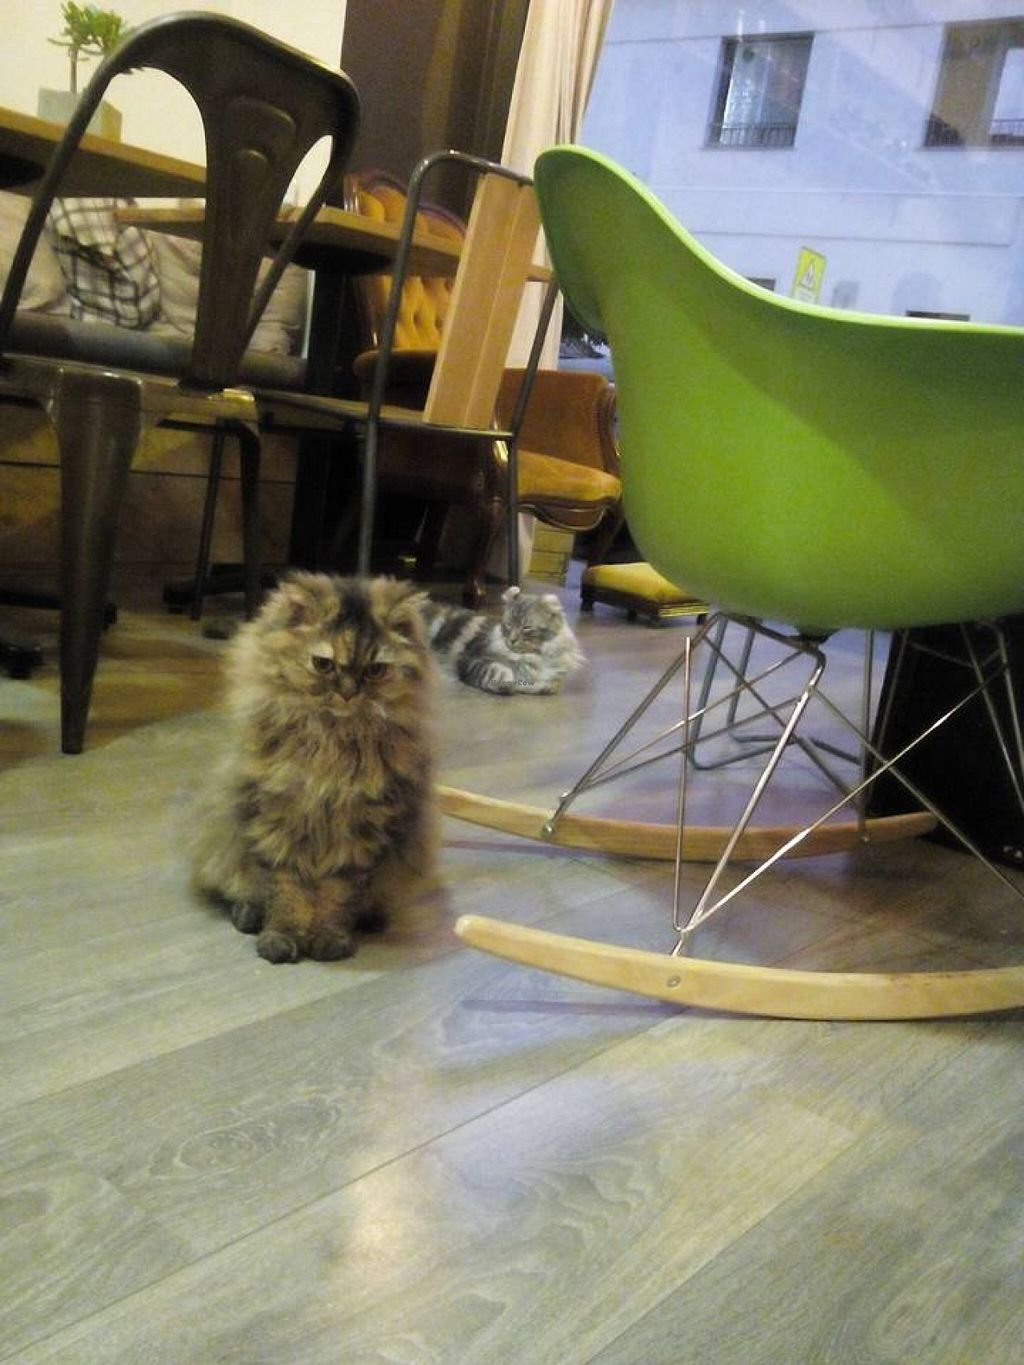 """Photo of La Ronronnerie  by <a href=""""/members/profile/violainous"""">violainous</a> <br/>Evolie and Leon, two of the cafe's cats <br/> November 29, 2015  - <a href='/contact/abuse/image/66395/126519'>Report</a>"""